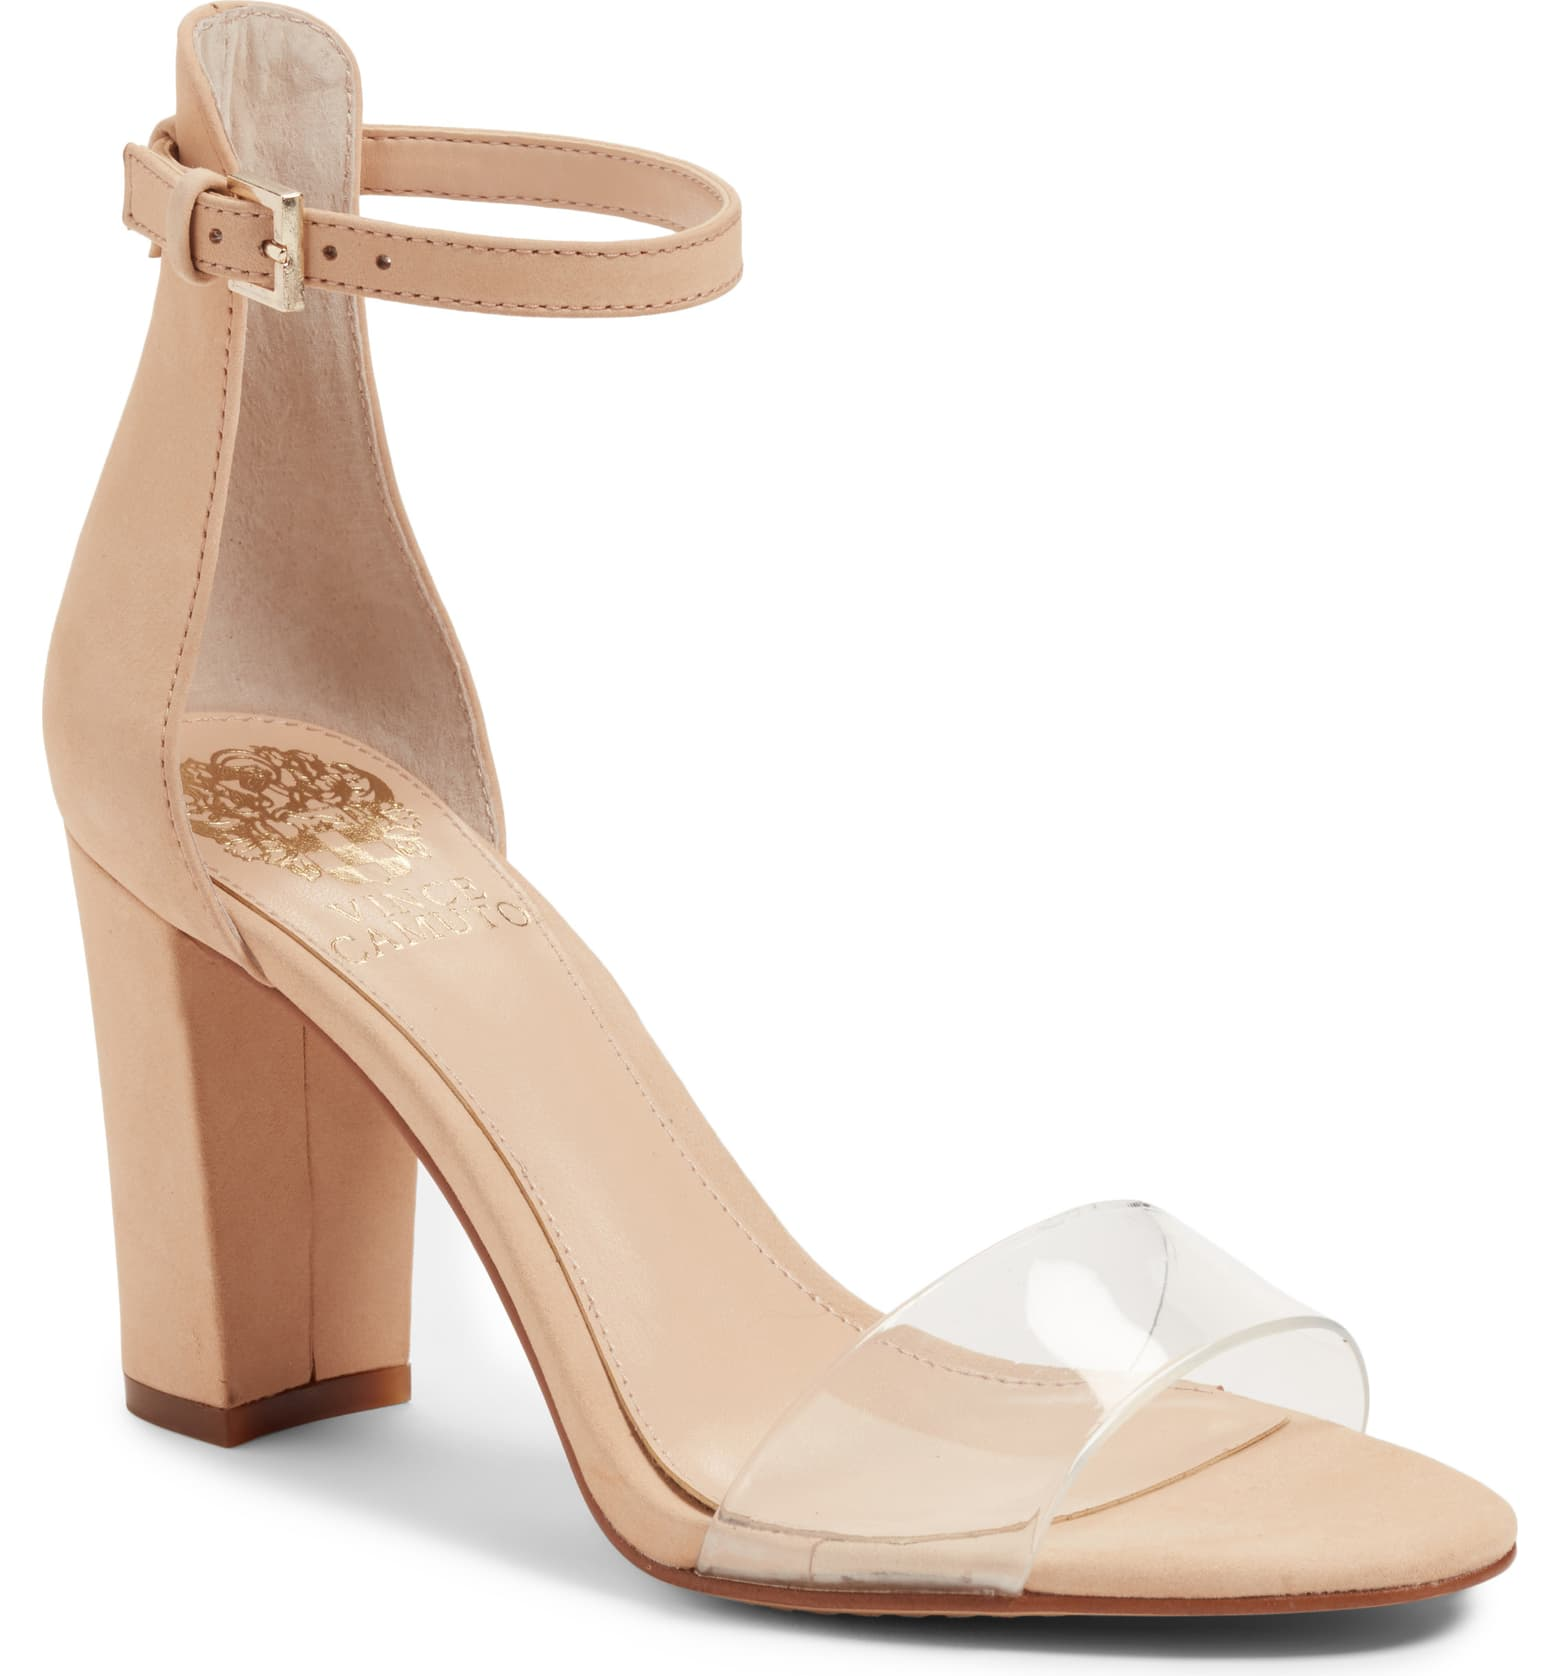 Nordstrom Anniversary Sale - #NSALE - Nordstrom Sale - Fall Fashion - Women's Fashion - Sabby Style-22